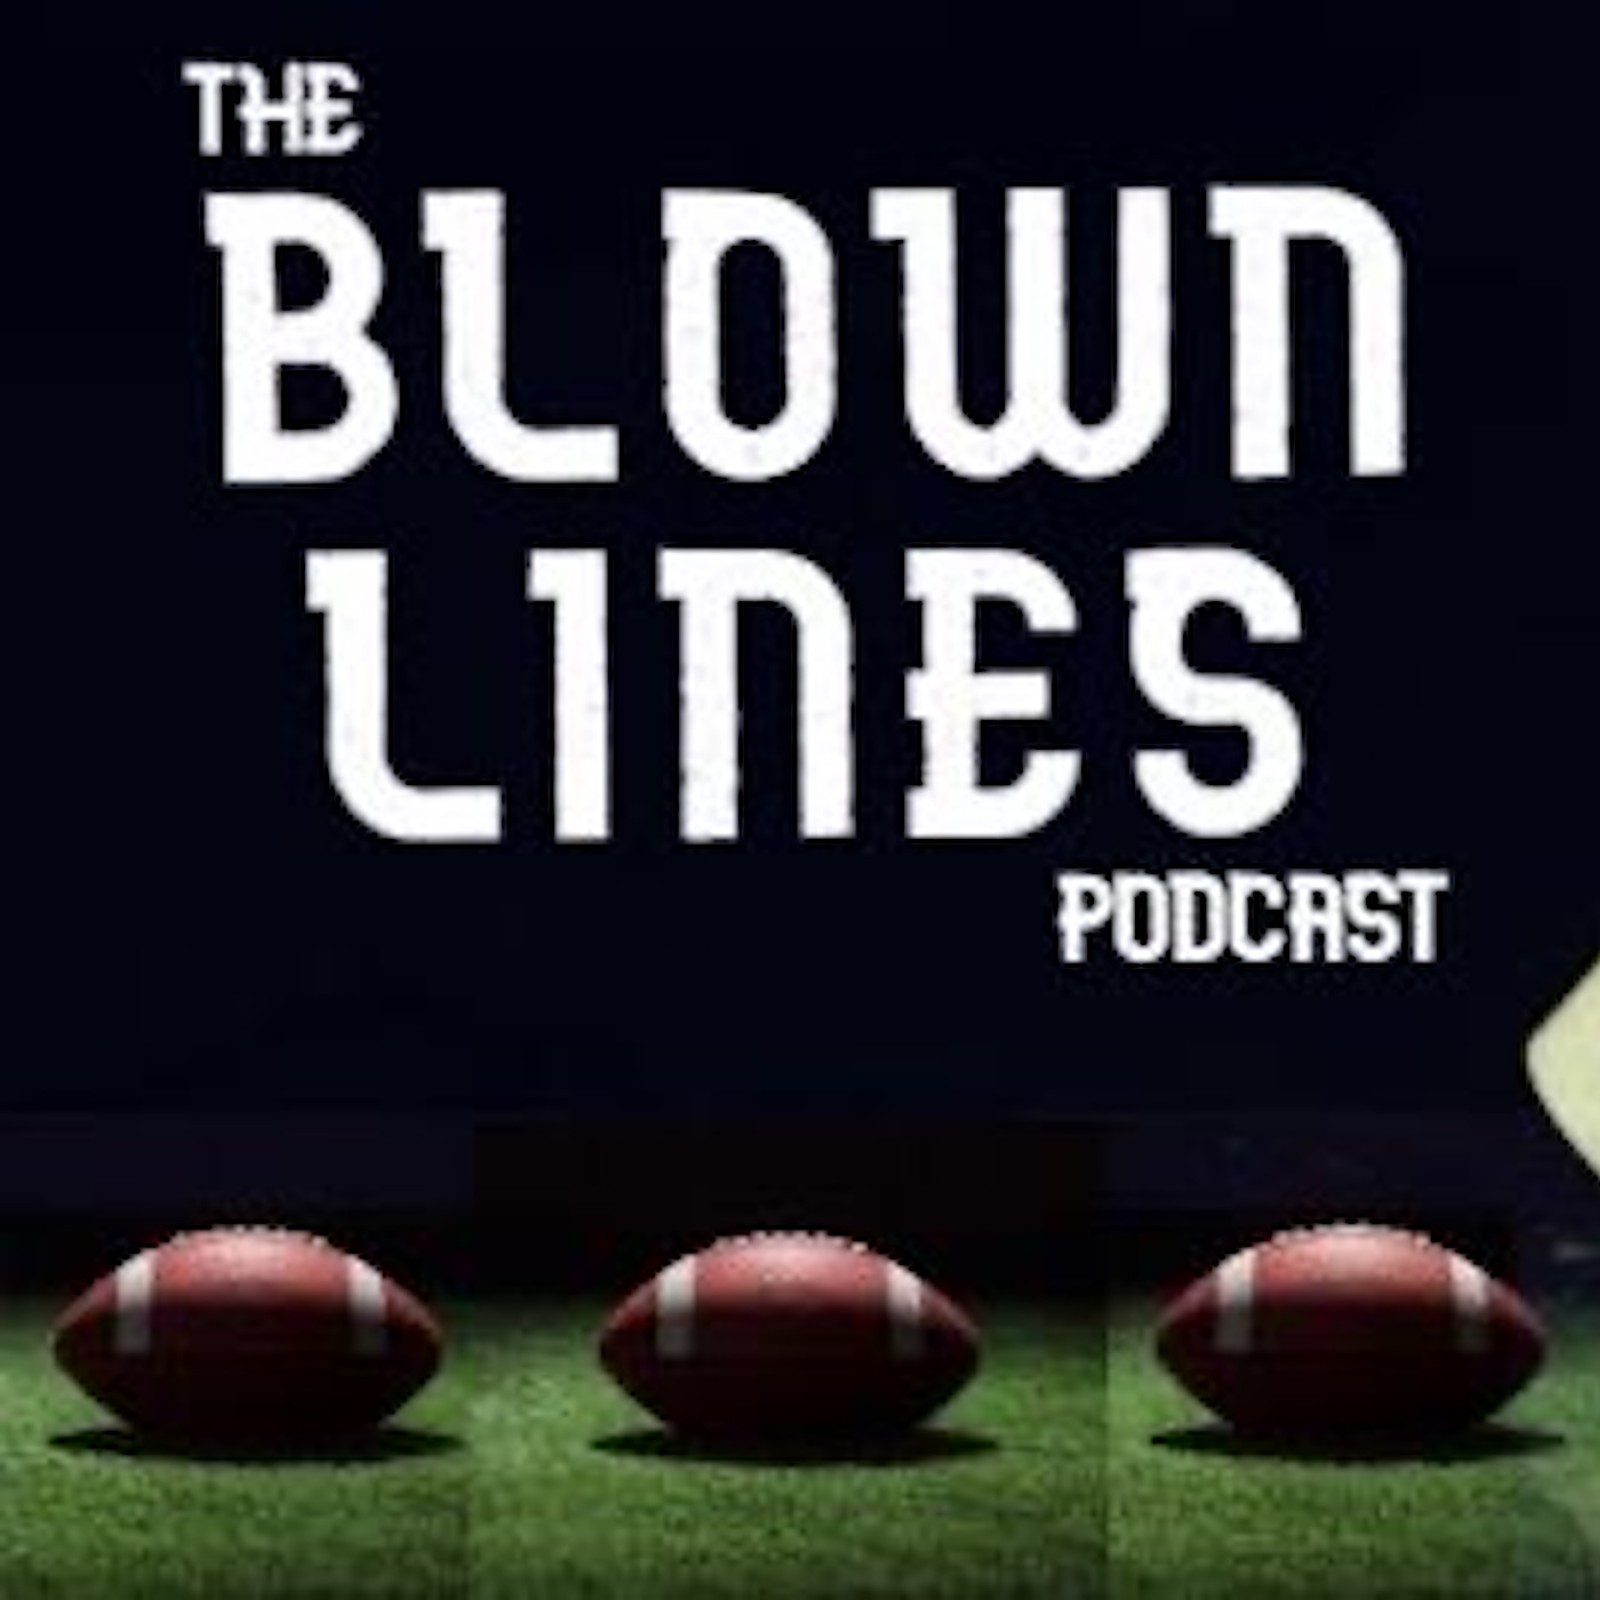 Blown Lines Podcast